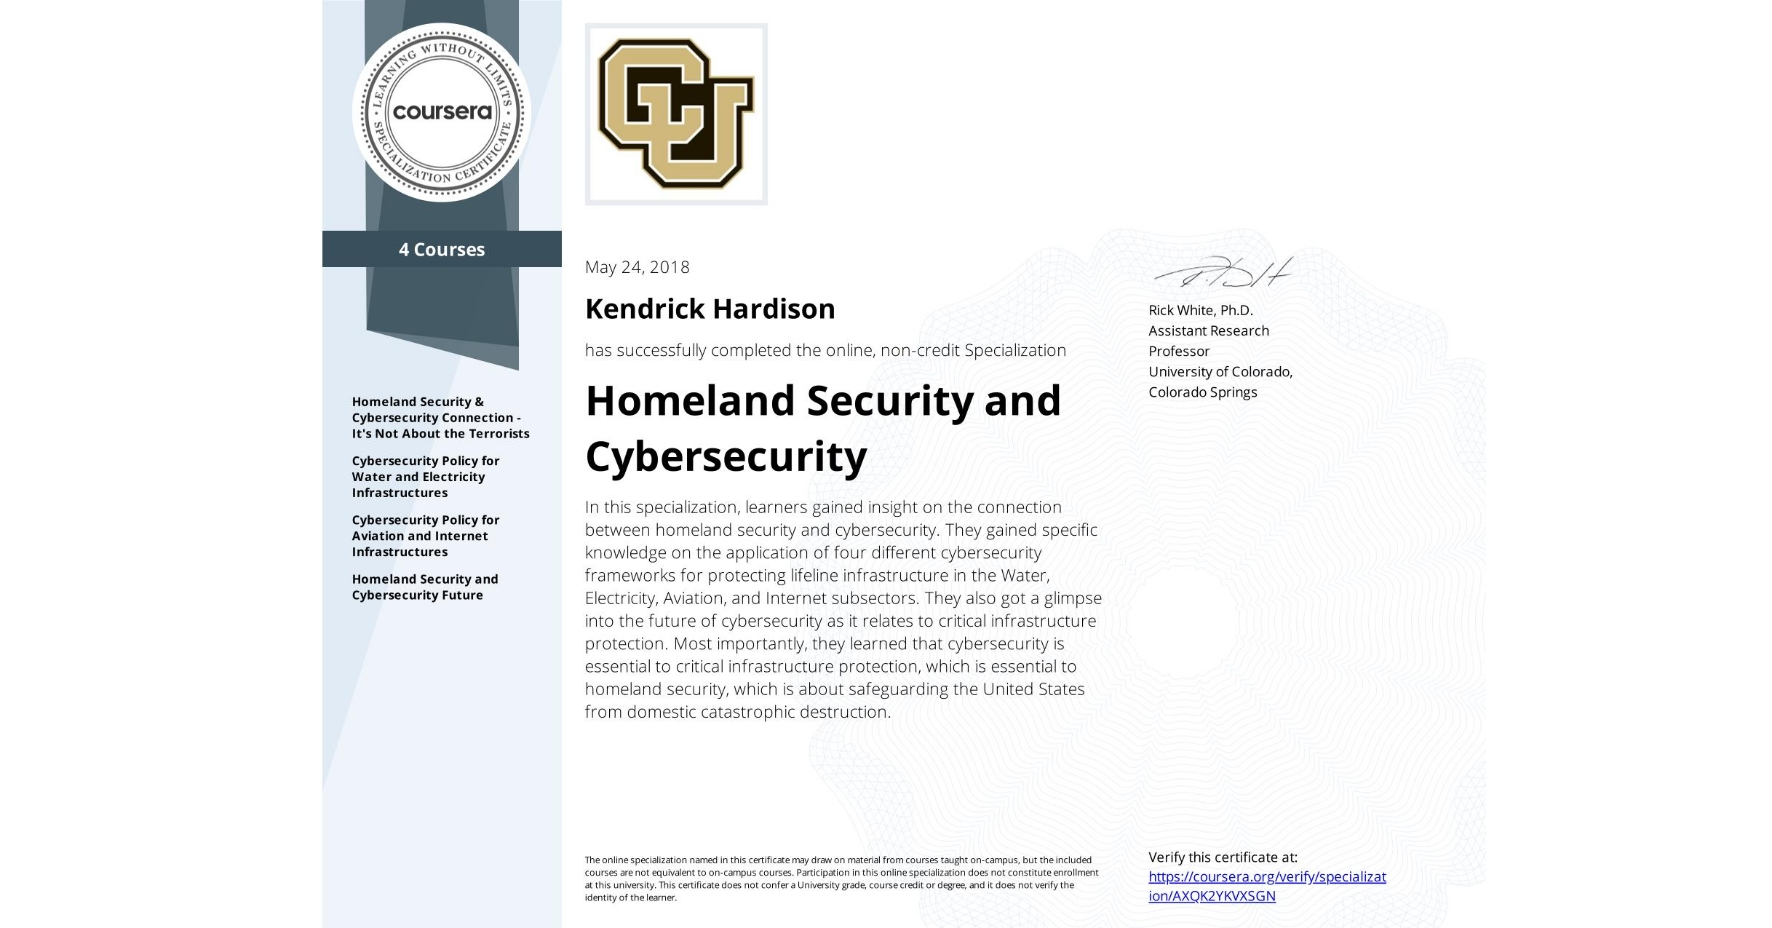 View certificate for Kendrick Hardison, Homeland Security and Cybersecurity, offered through Coursera. In this specialization, learners gained insight on the connection between homeland security and cybersecurity. They gained specific knowledge on the application of four different cybersecurity frameworks for protecting lifeline infrastructure in the Water, Electricity, Aviation, and Internet subsectors. They also got a glimpse into the future of cybersecurity as it relates to critical infrastructure protection. Most importantly, they learned that cybersecurity is essential to critical infrastructure protection, which is essential to homeland security, which is about safeguarding the United States from domestic catastrophic destruction.